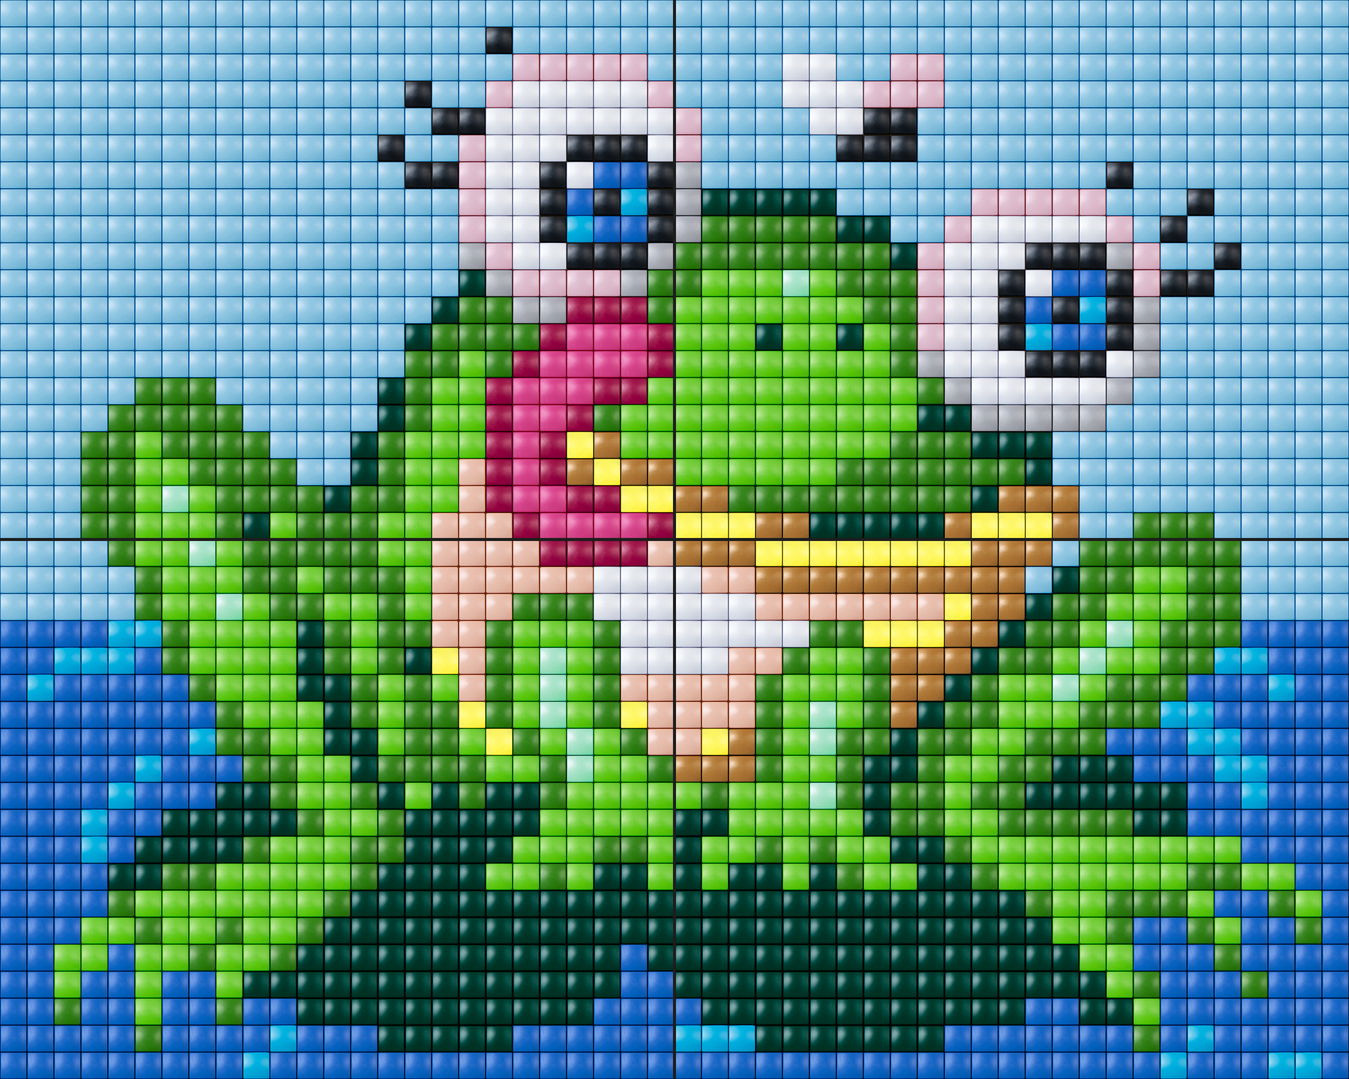 Frog_Animals_Liz_2x2P_XL.png